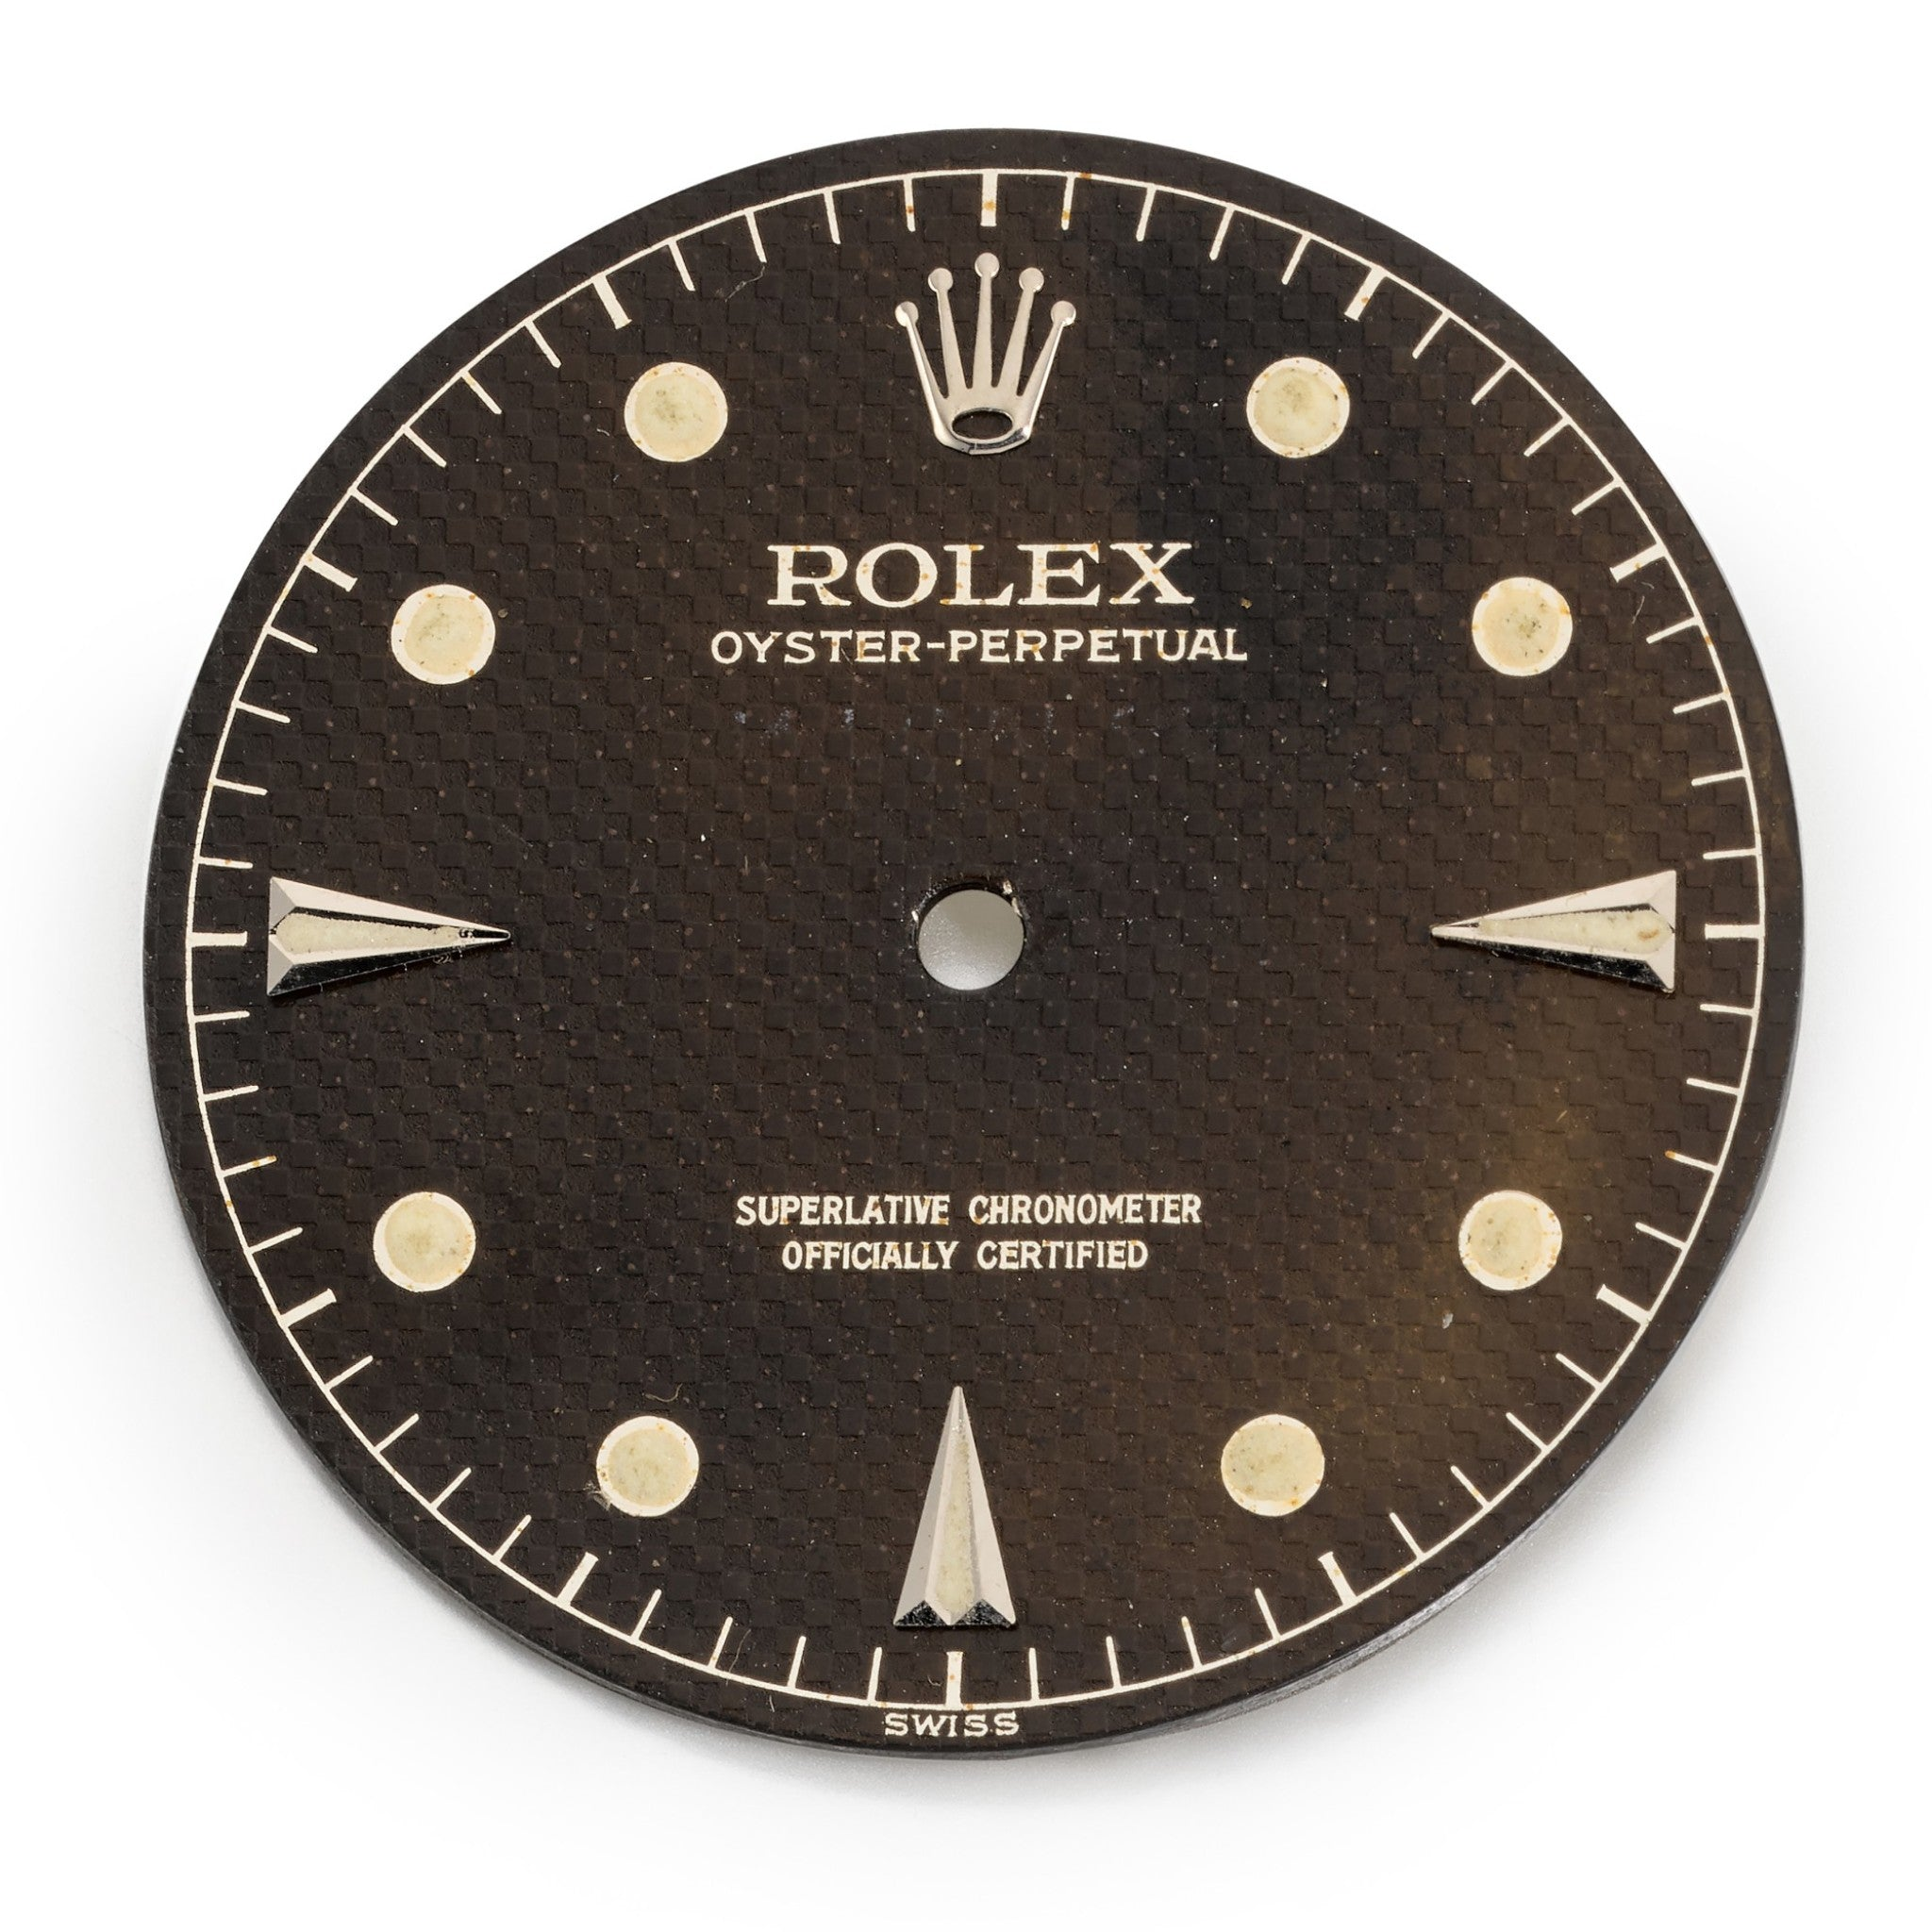 Rolex Milgauss dial out of the case with the Migauss name missing honeycomb dial for A Collected Man London